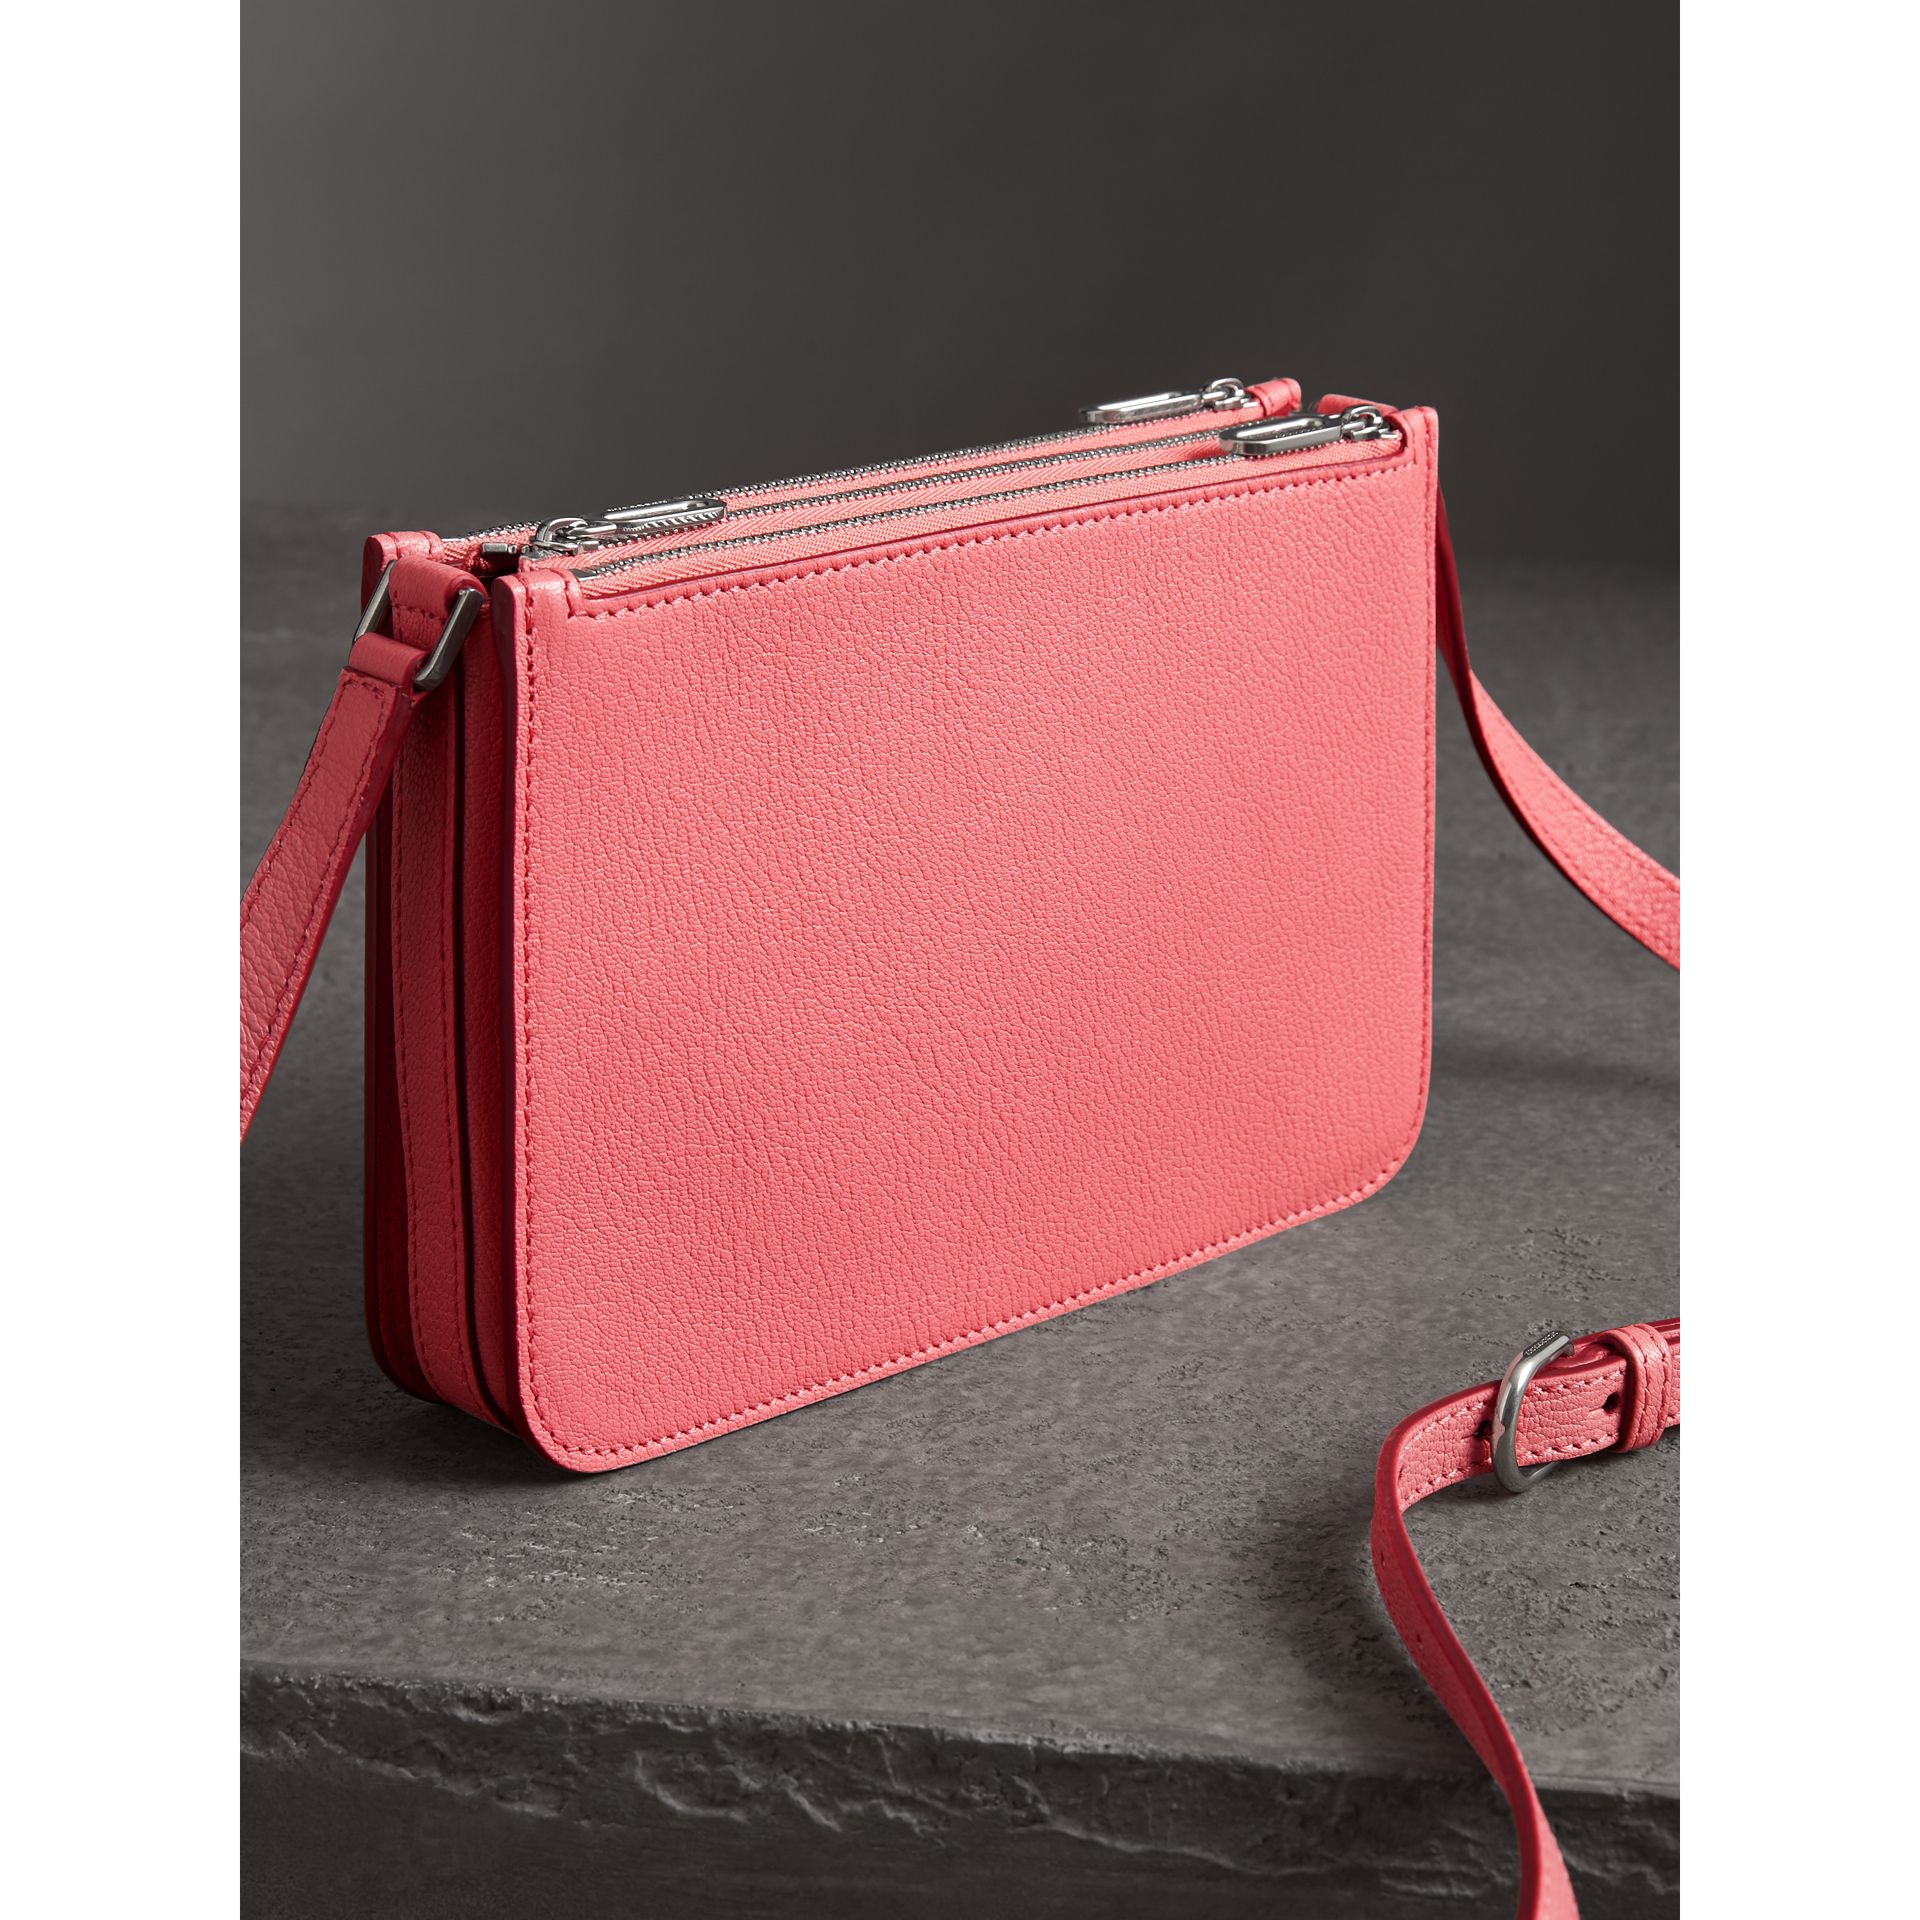 Triple Zip Grainy Leather Crossbody Bag in Bright Coral Pink - Women | Burberry United States - gallery image 4